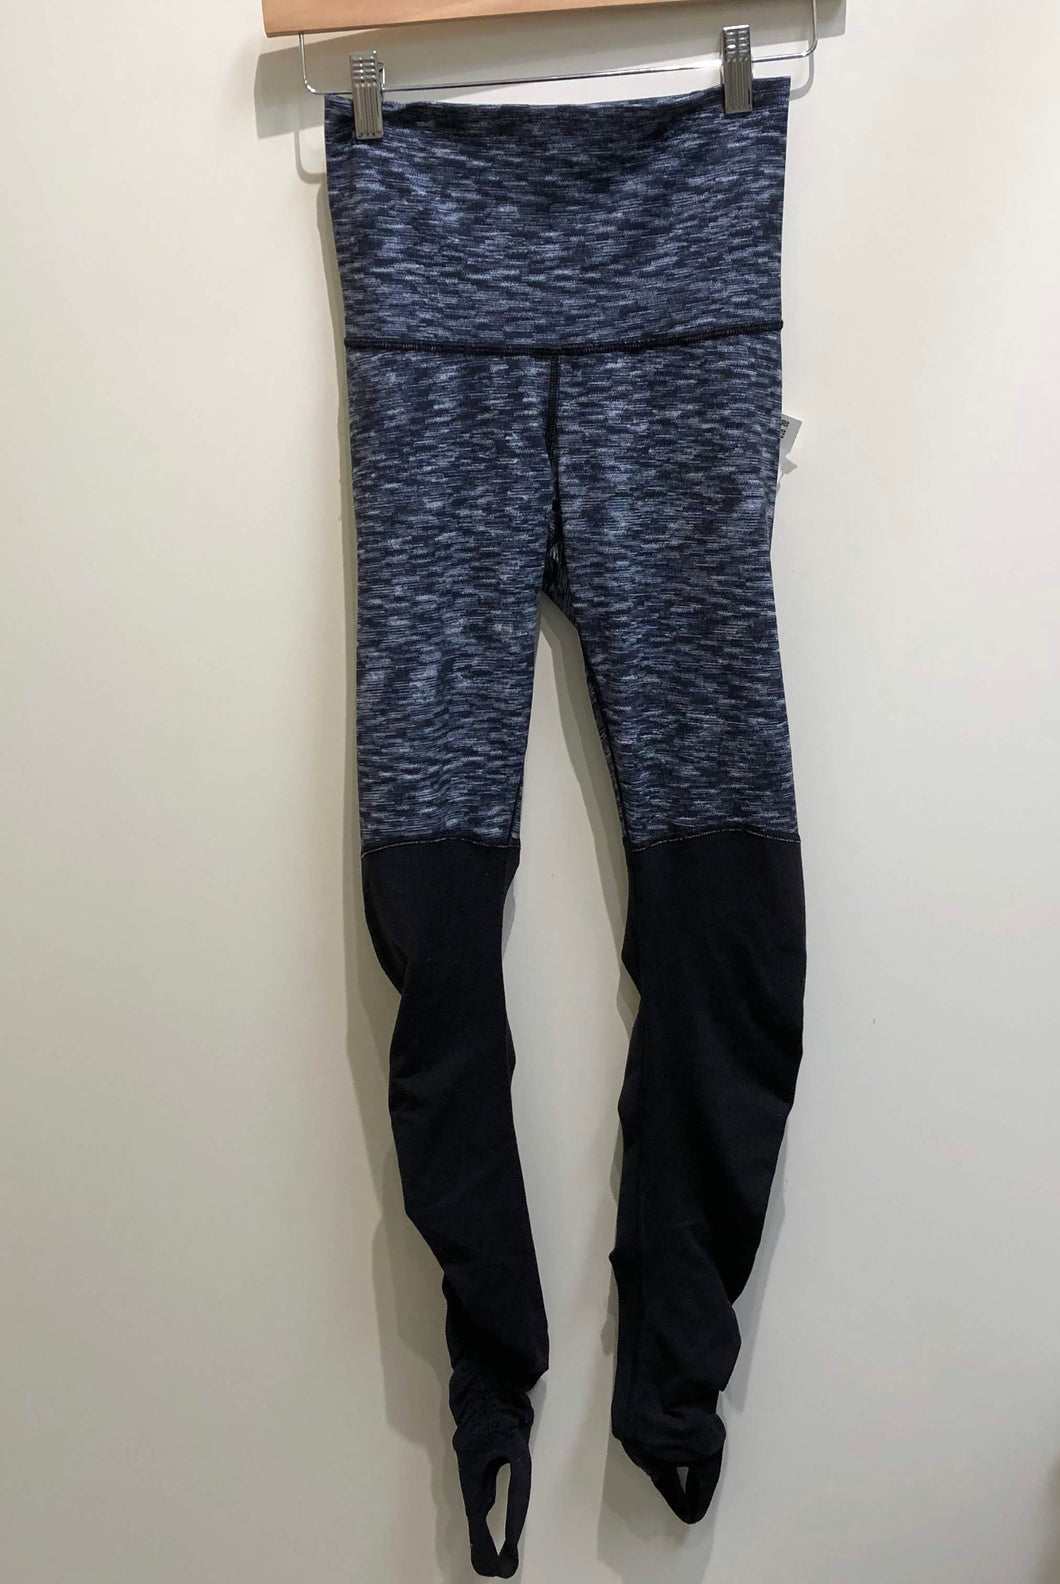 Lulu Lemon Womens Athletic Pants Size 3/4 (27)-IMG_8895.jpg